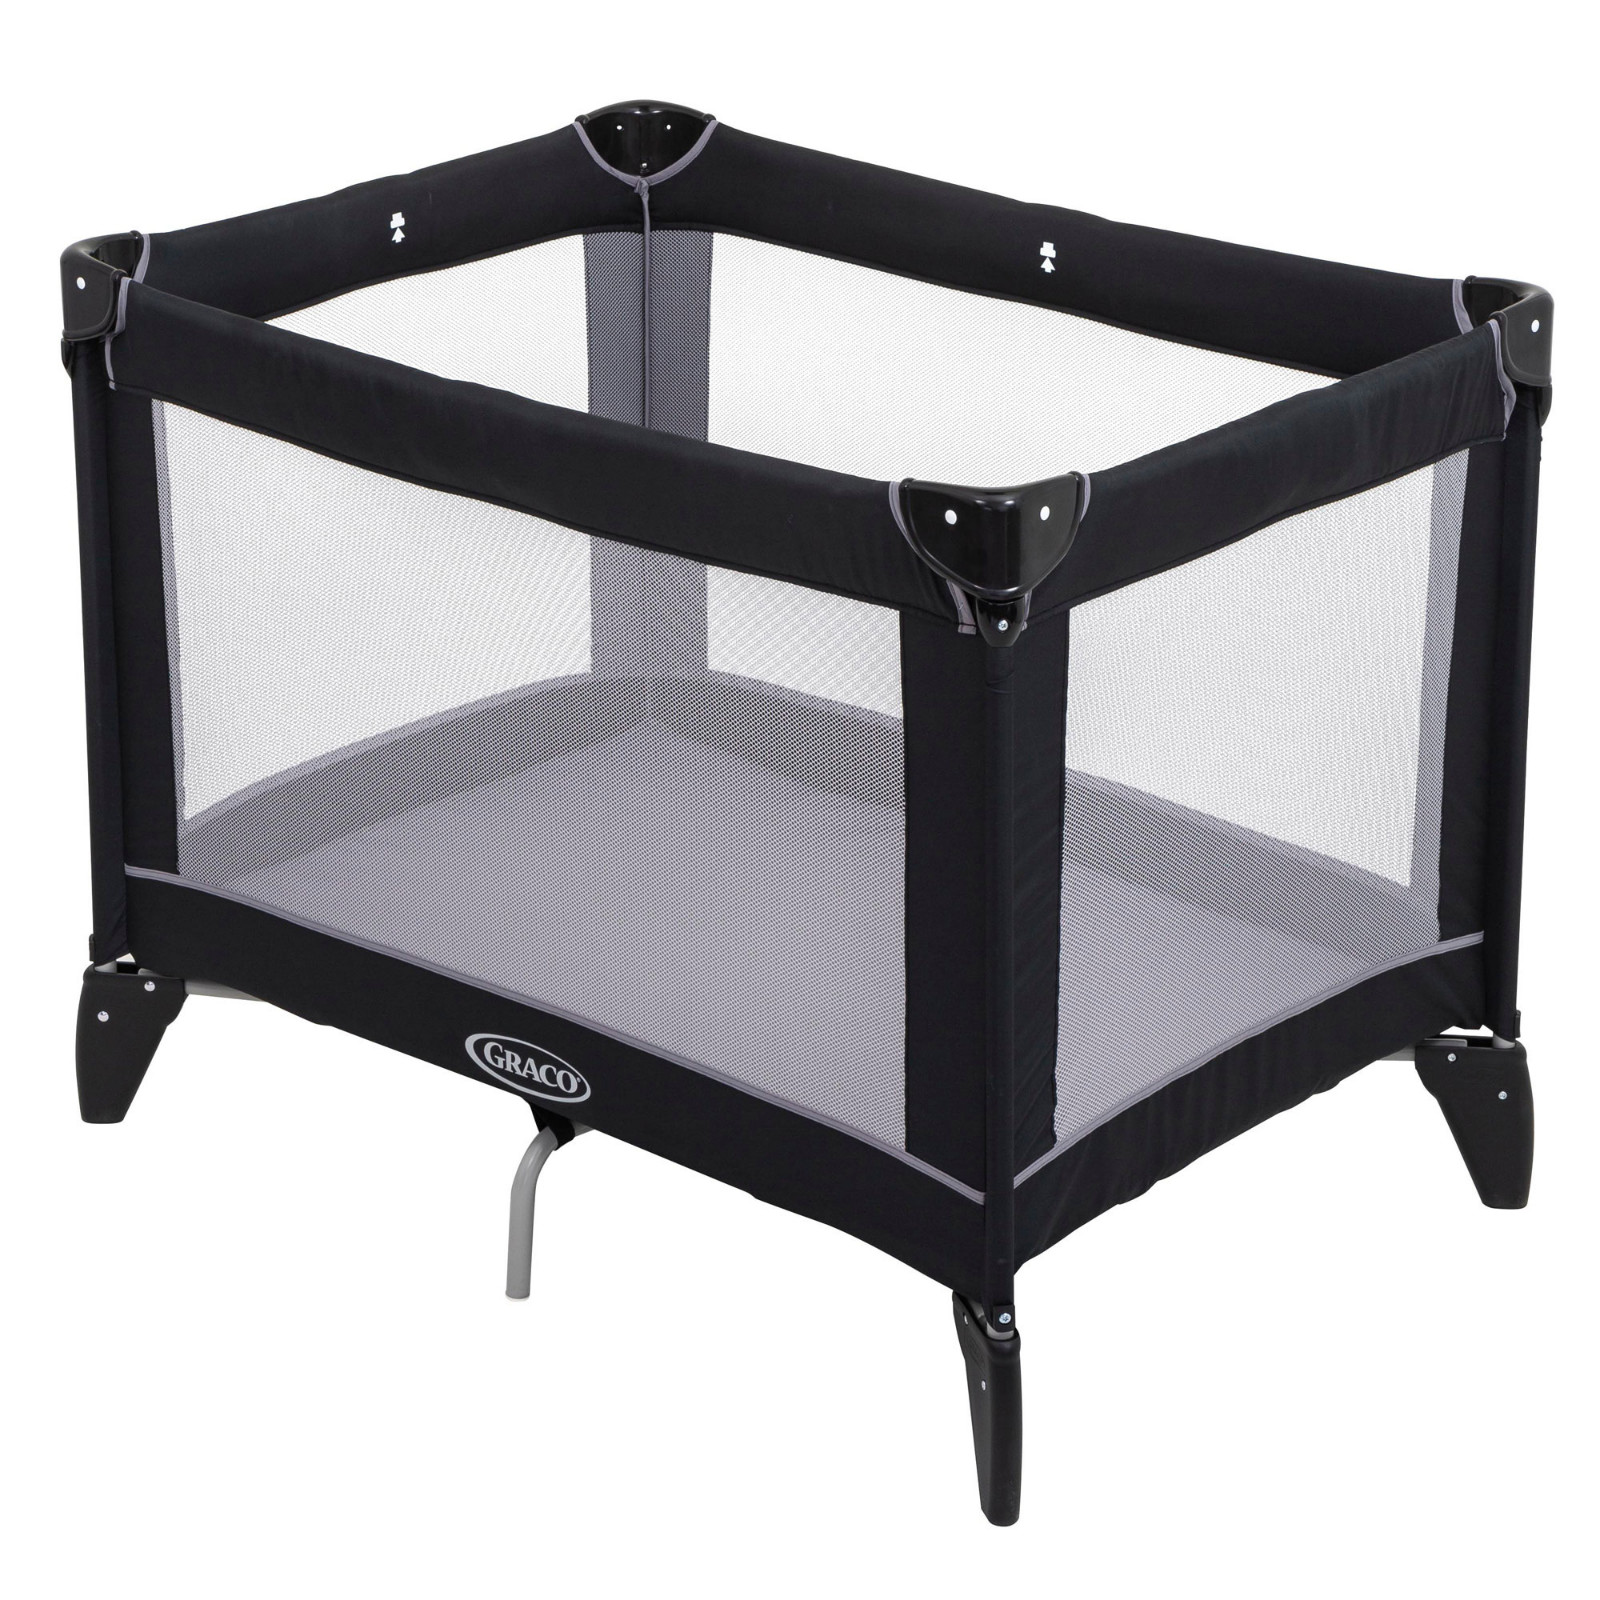 Graco Compact Travel Cot Black Grey Buy At Online4baby